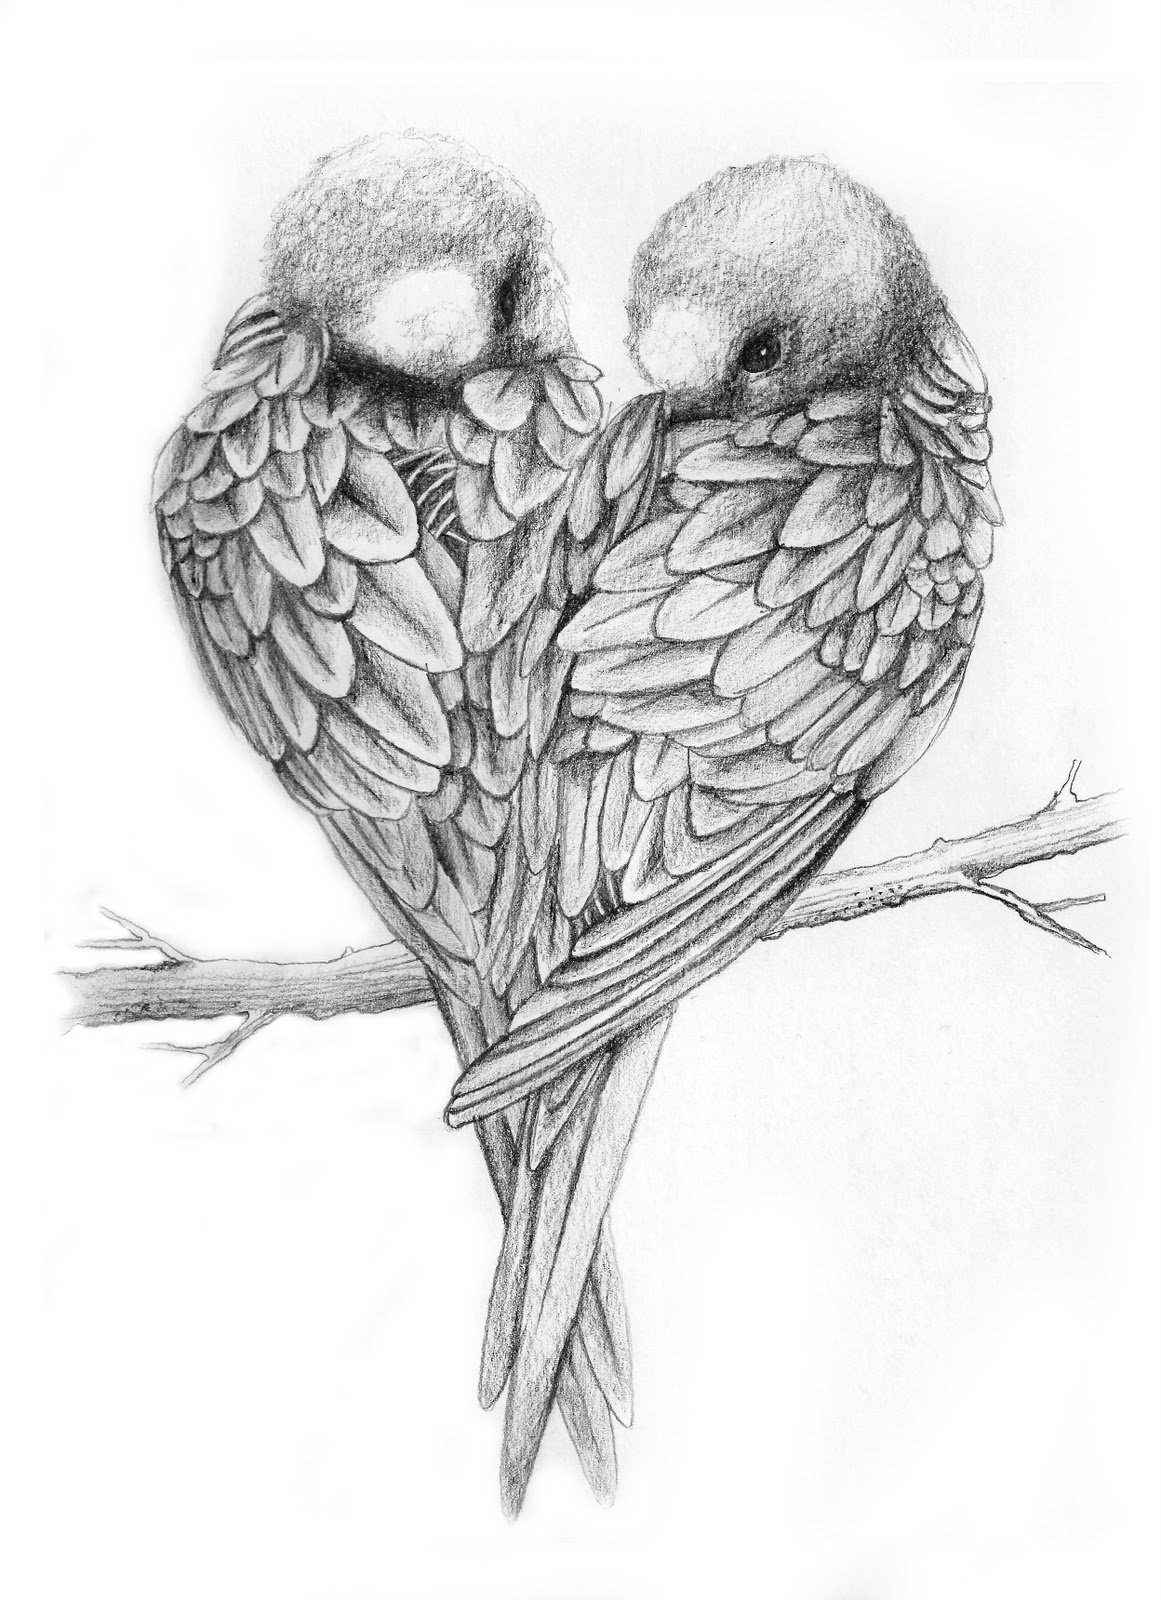 Drawn lovebird Birds Love Drawings Love Drawing